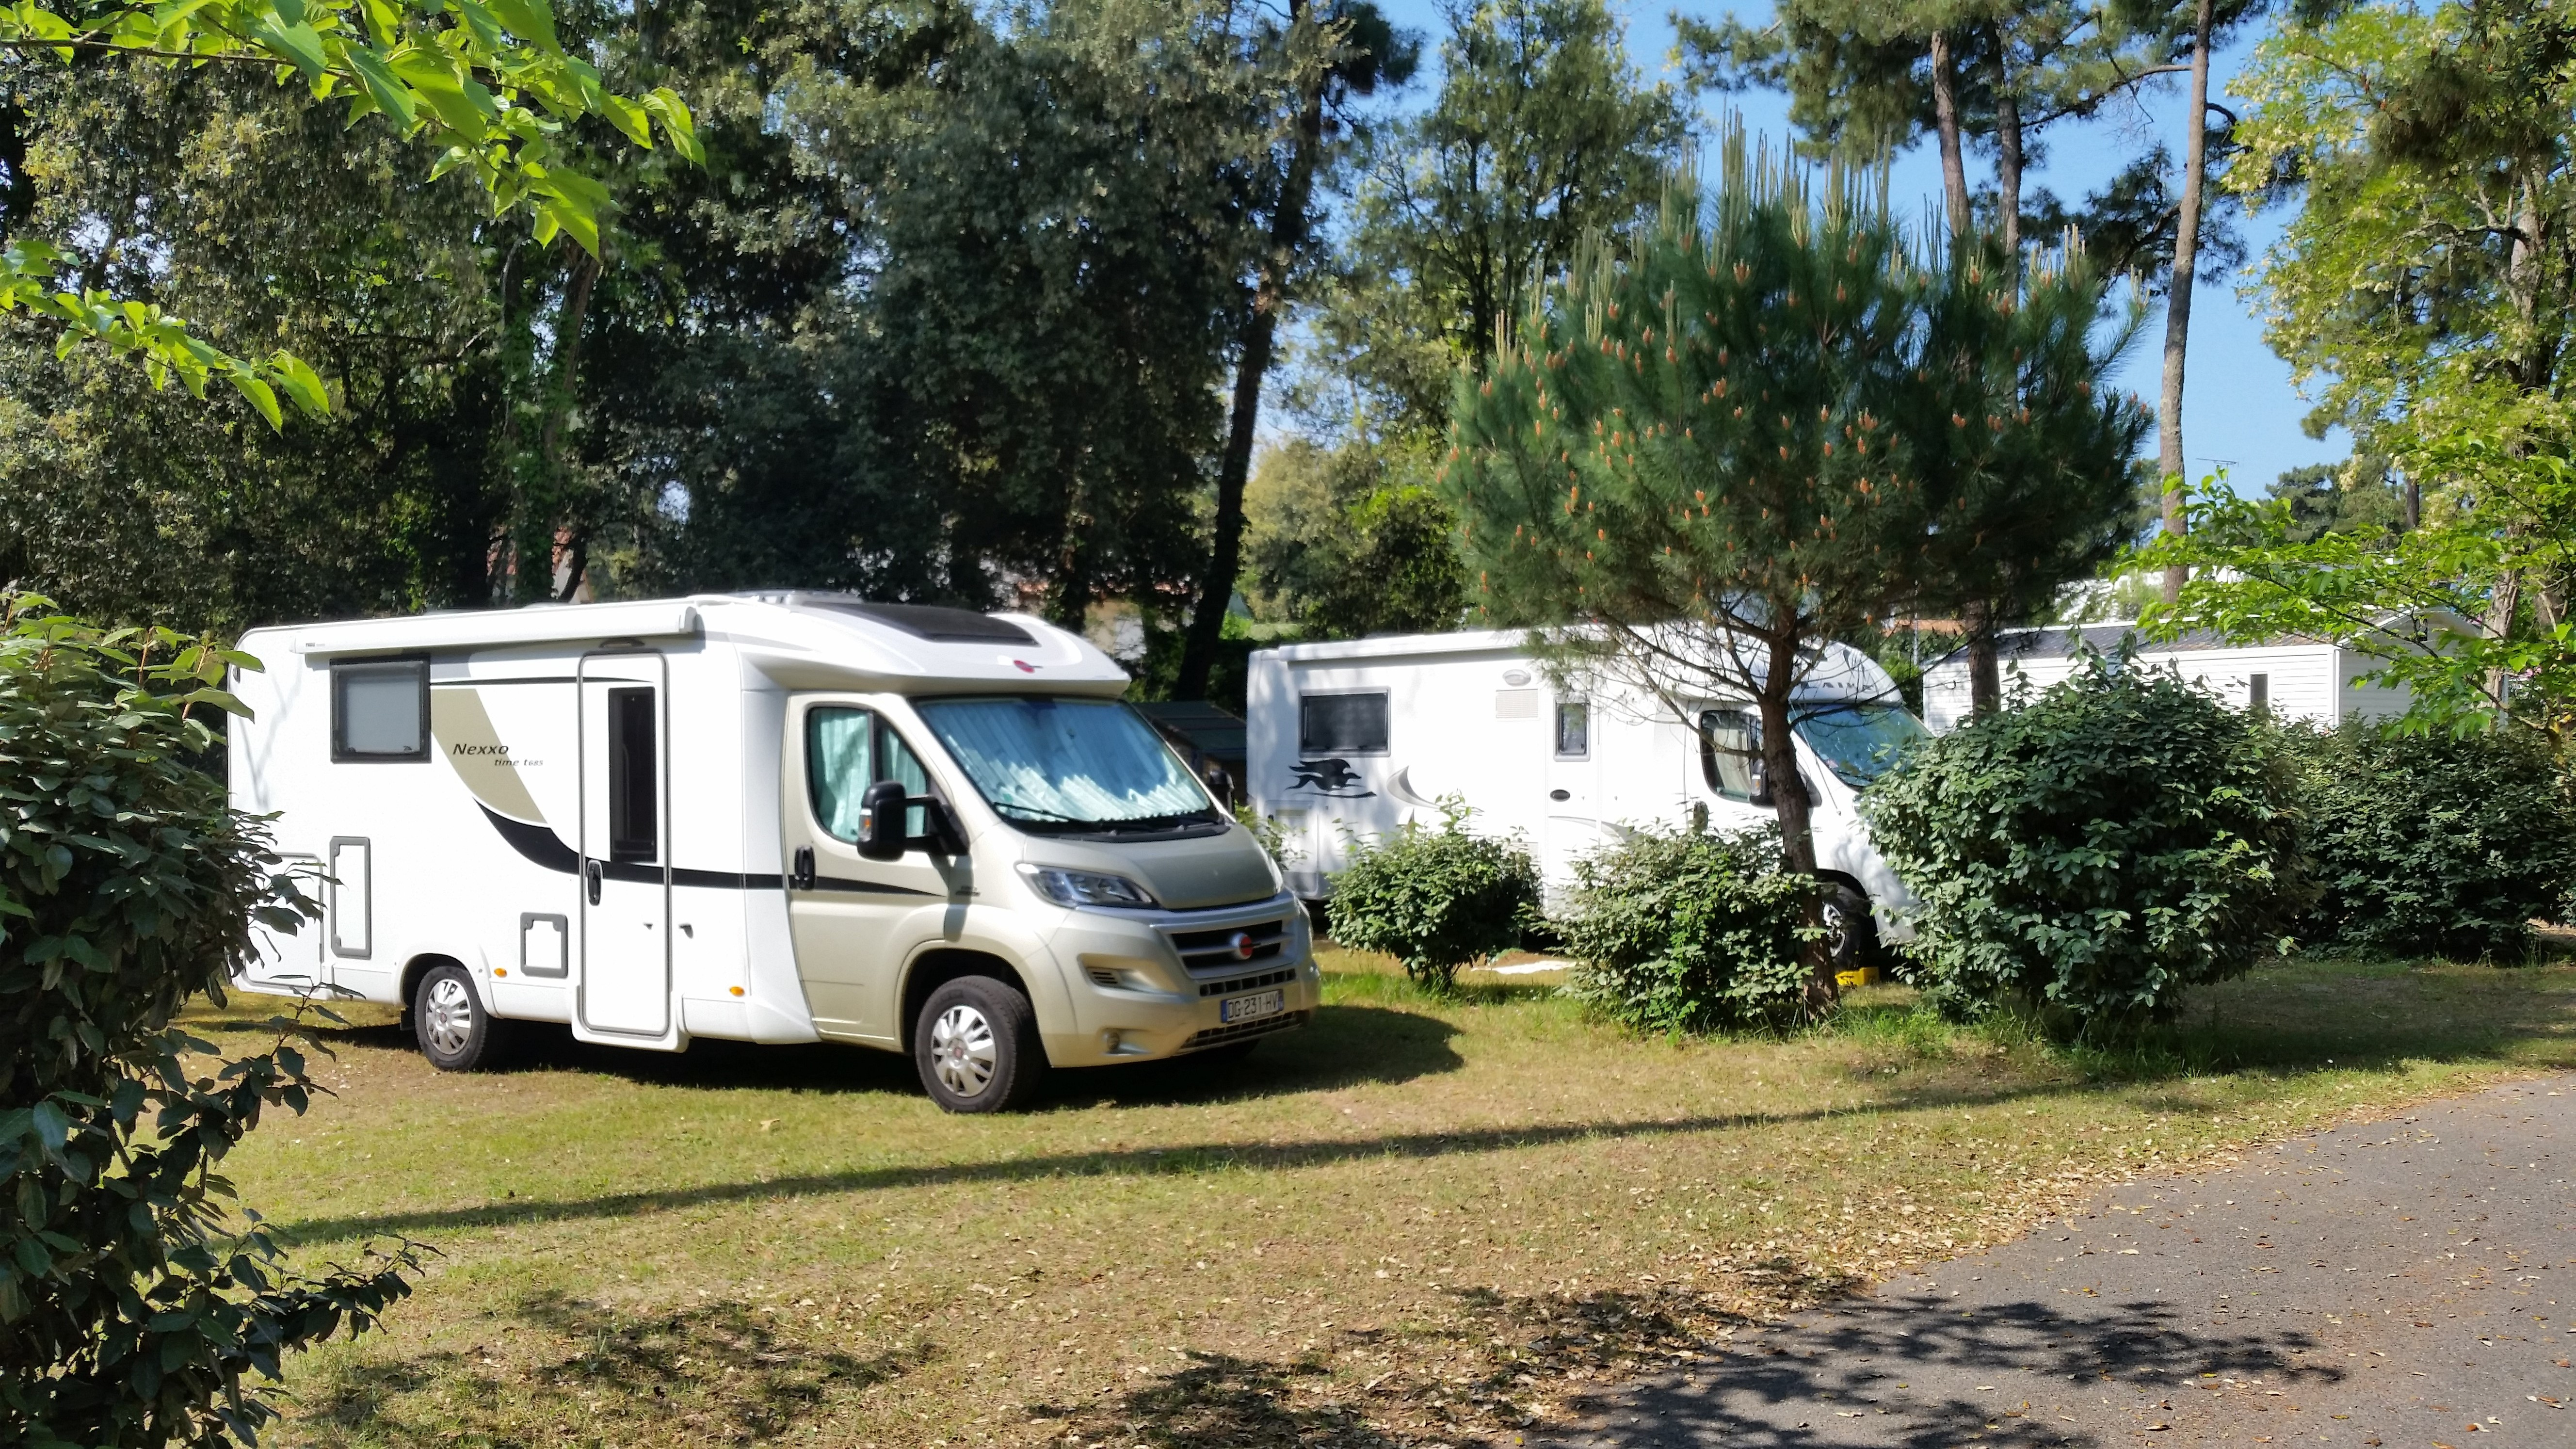 emplacements camping car camping*** beausoleil la palmyre proche royan charente maritime